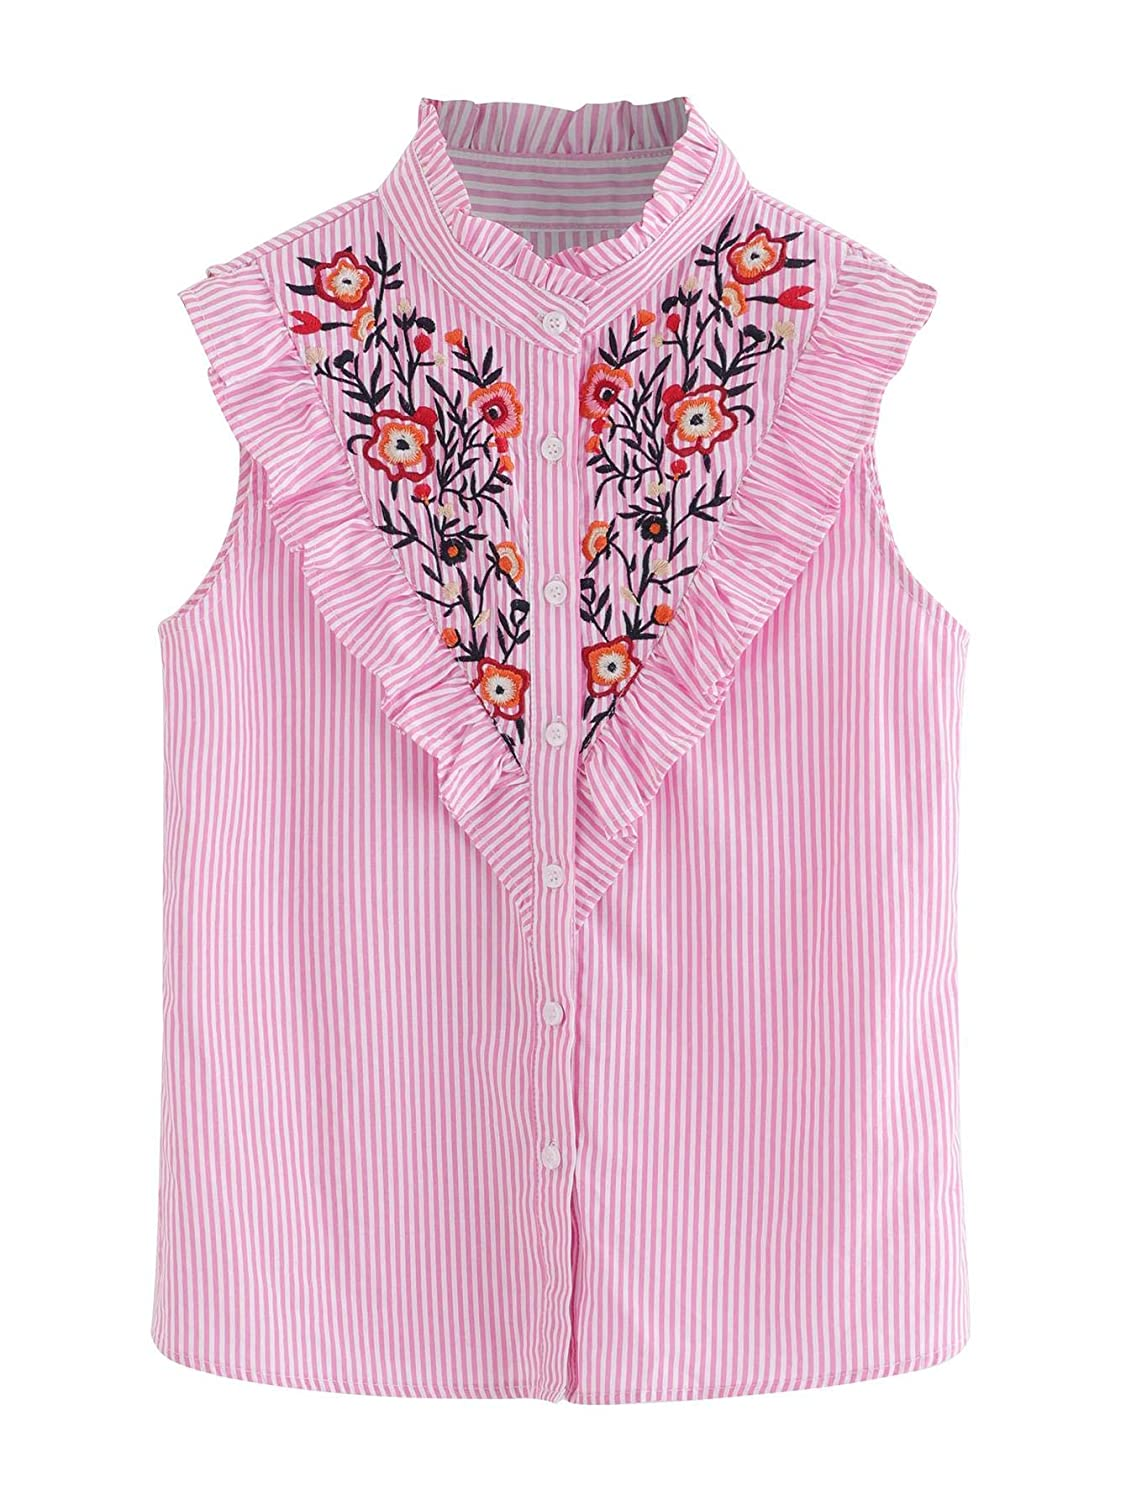 8fb3ccb20f4 Floerns Women s Vertical Striped Ruffle Floral Embroidery Blouse Shirts at  Amazon Women s Clothing store